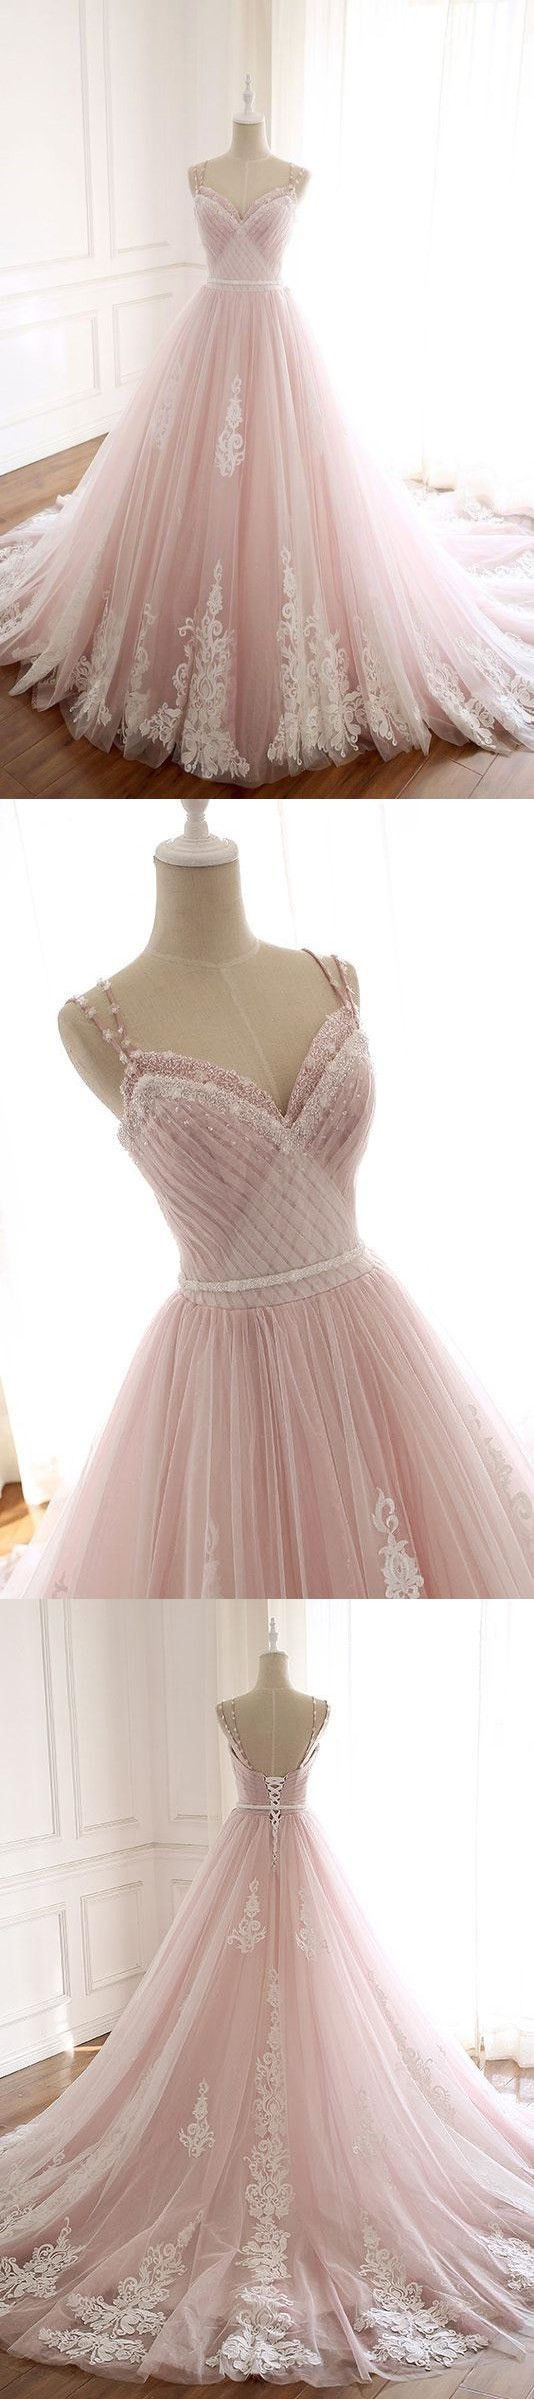 Pink sweetheart neck tulle long prom dress, lace tulle evening dress #promthings